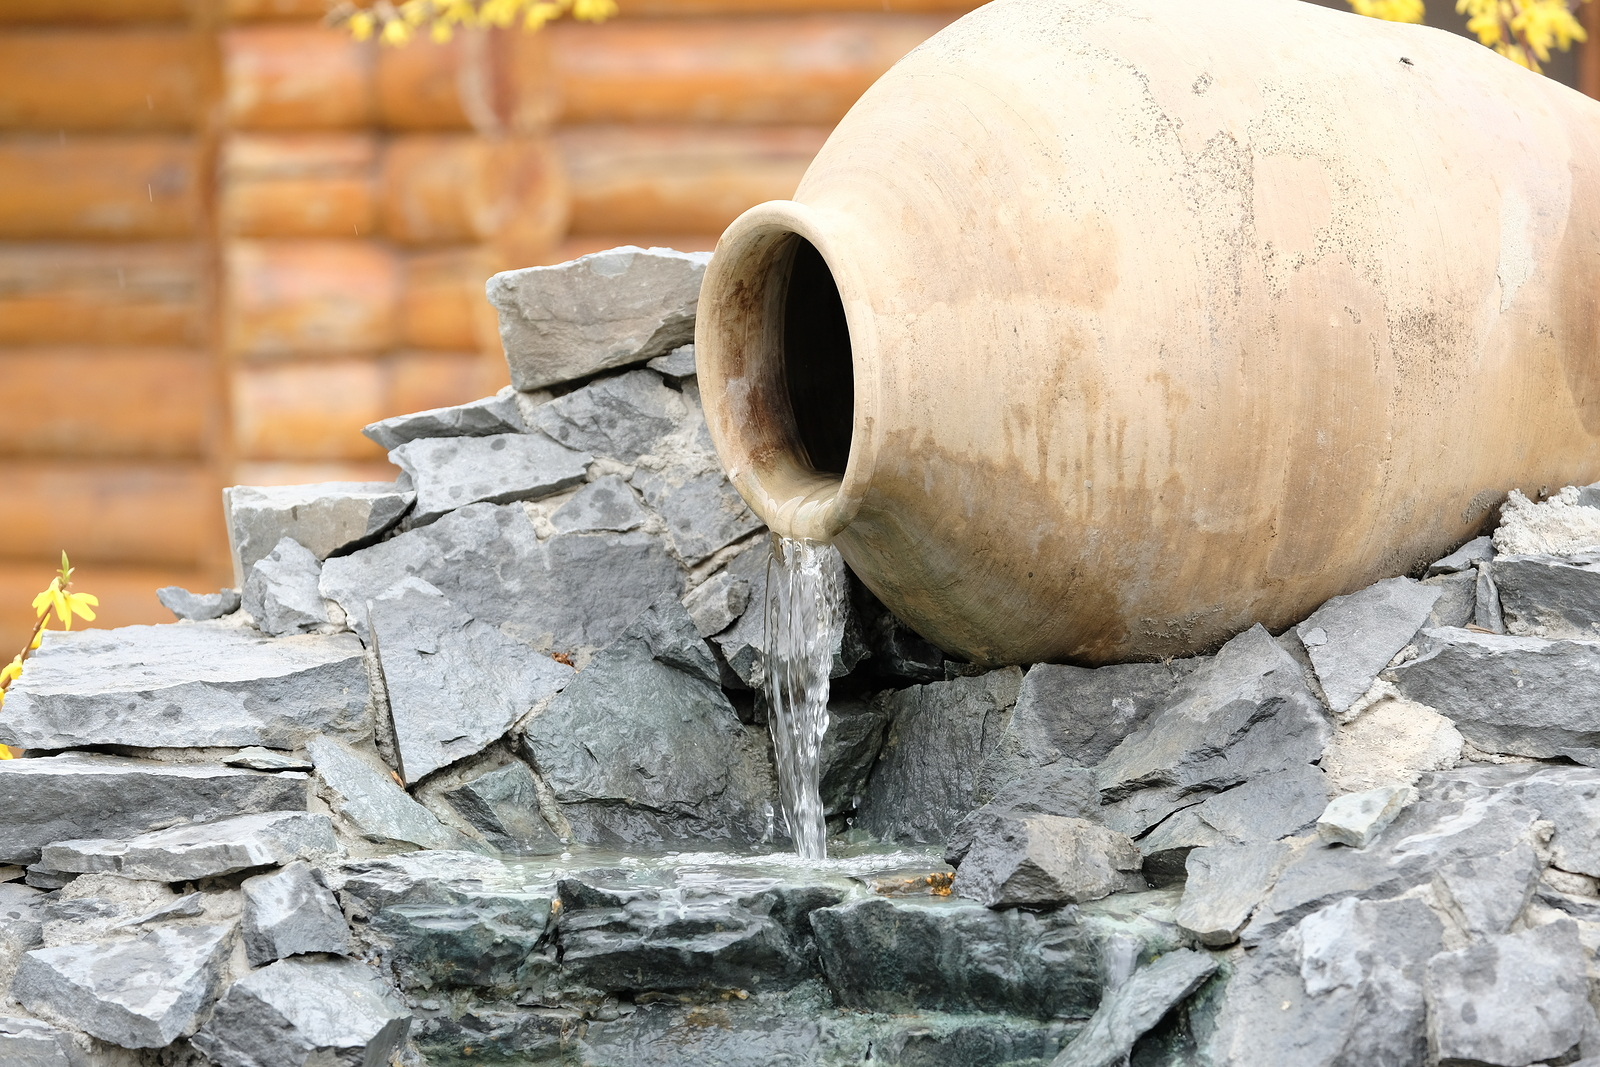 Decorative garden waterfall made with stone jar